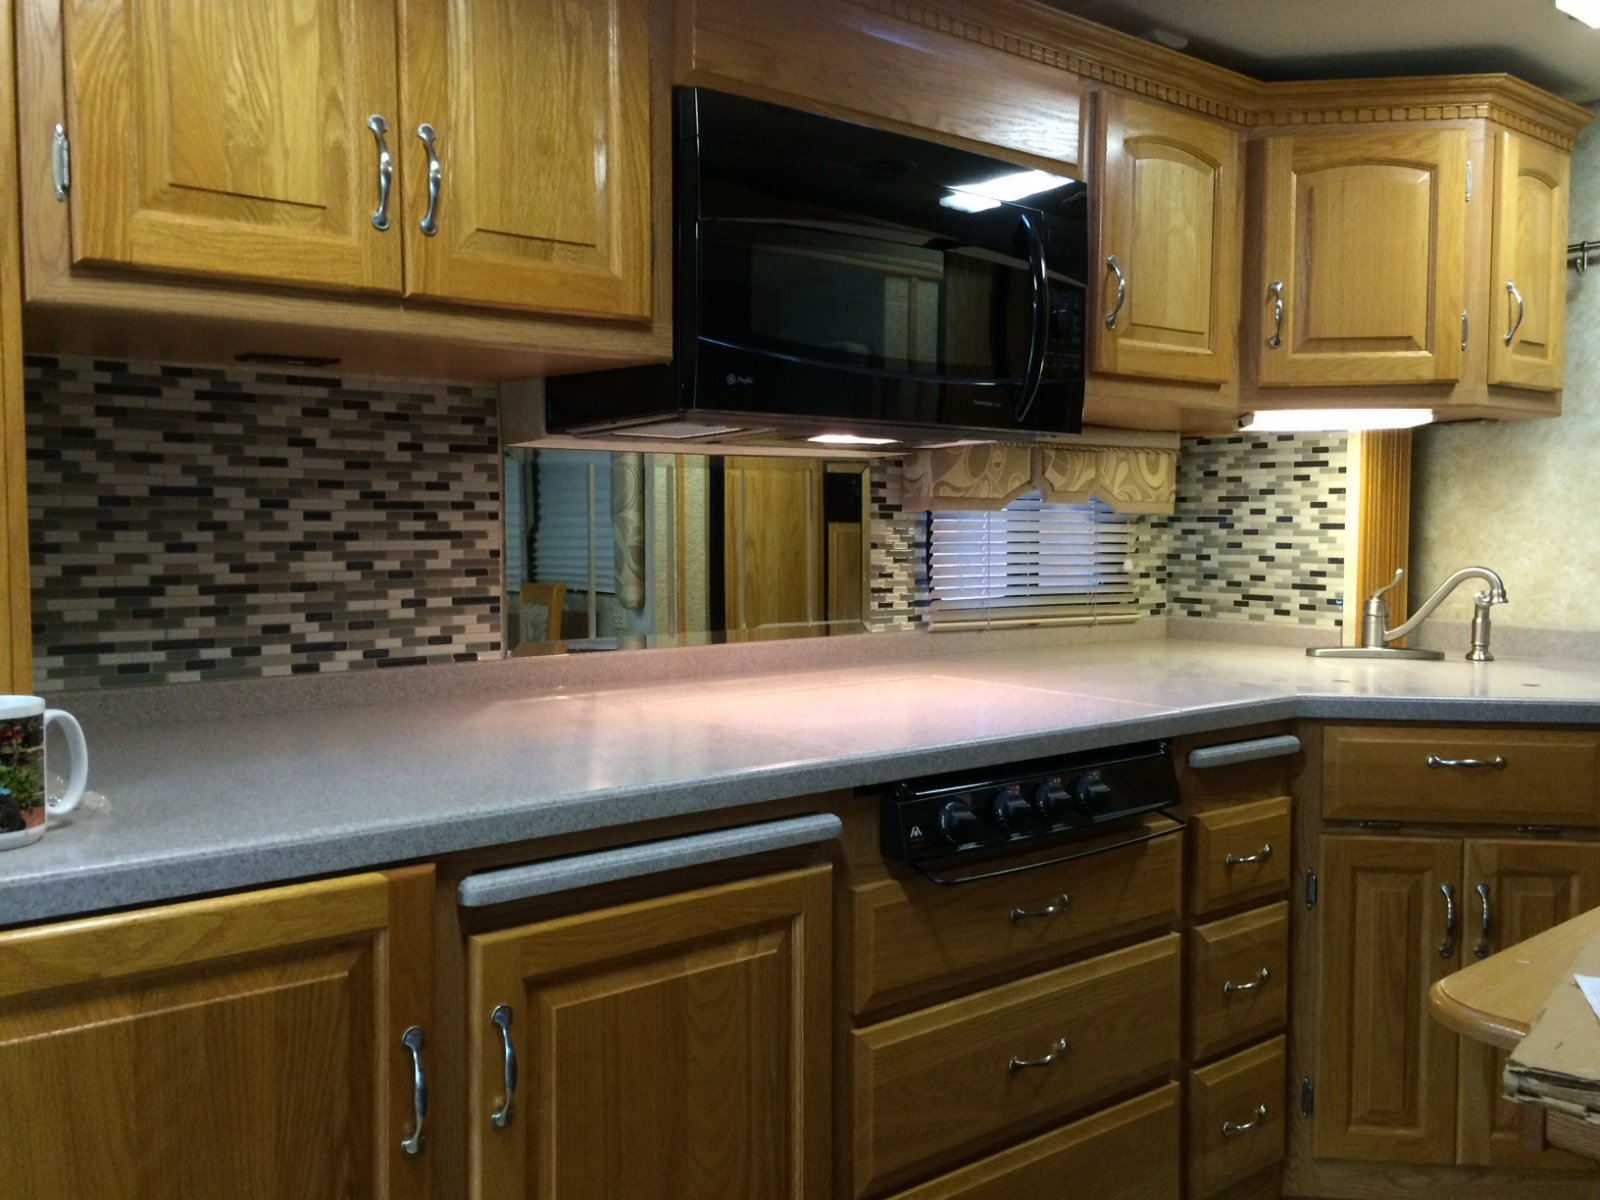 Click image for larger version  Name:kitchen.jpg Views:57 Size:267.5 KB ID:134317